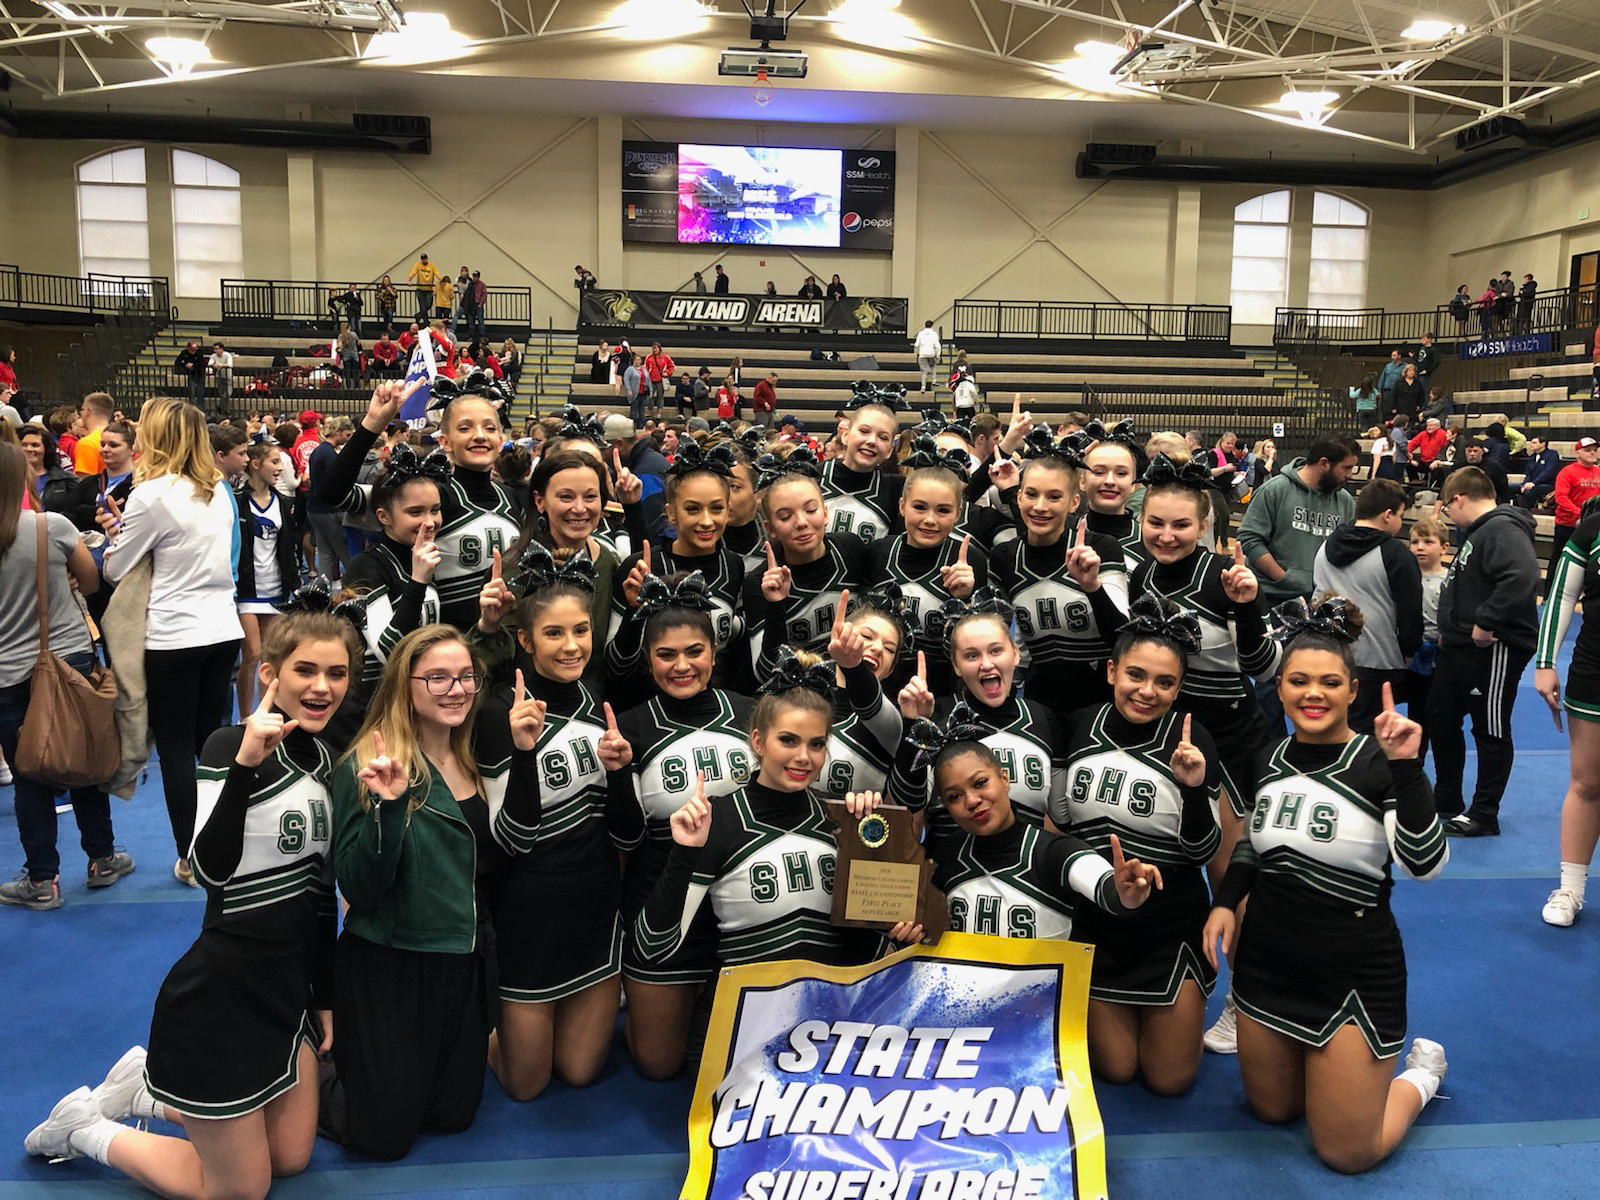 BACK TO BACK STATE CHEER CHAMPS!!!